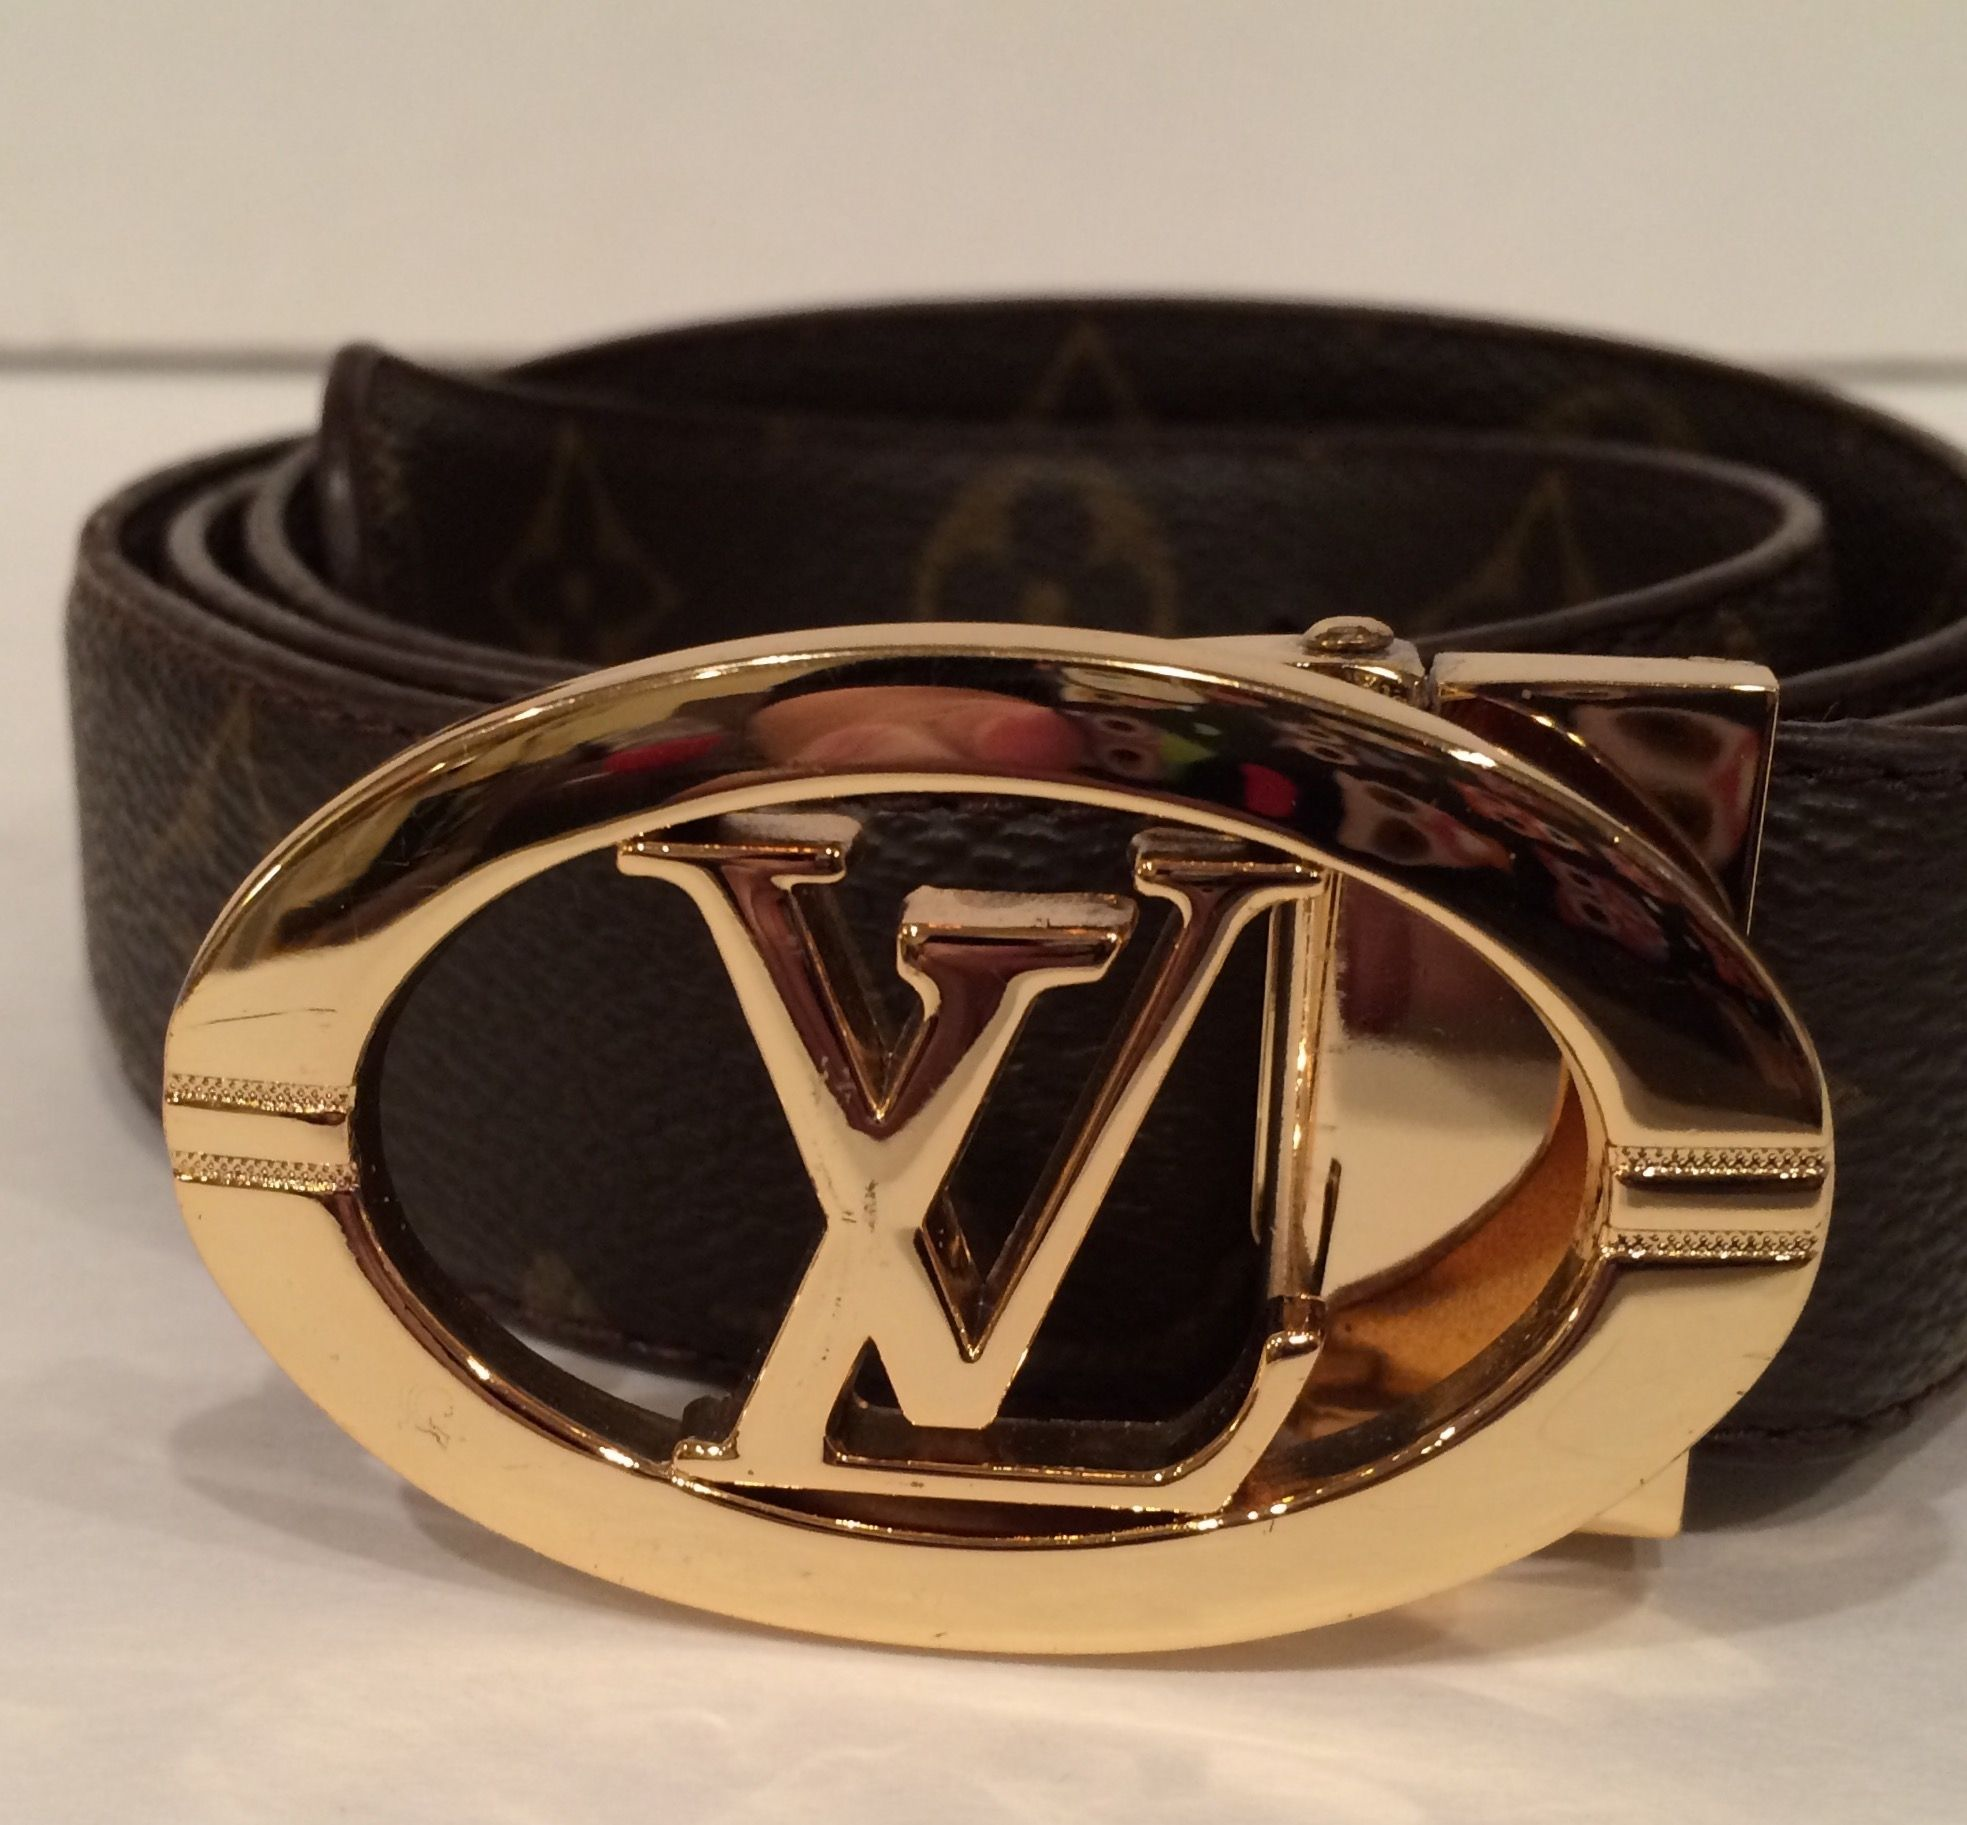 755cea2af10 Monogram LV Circle Belt. Get the lowest price on Monogram LV Circle Belt  and other fabulous designer clothing and accessories! Shop Tradesy now